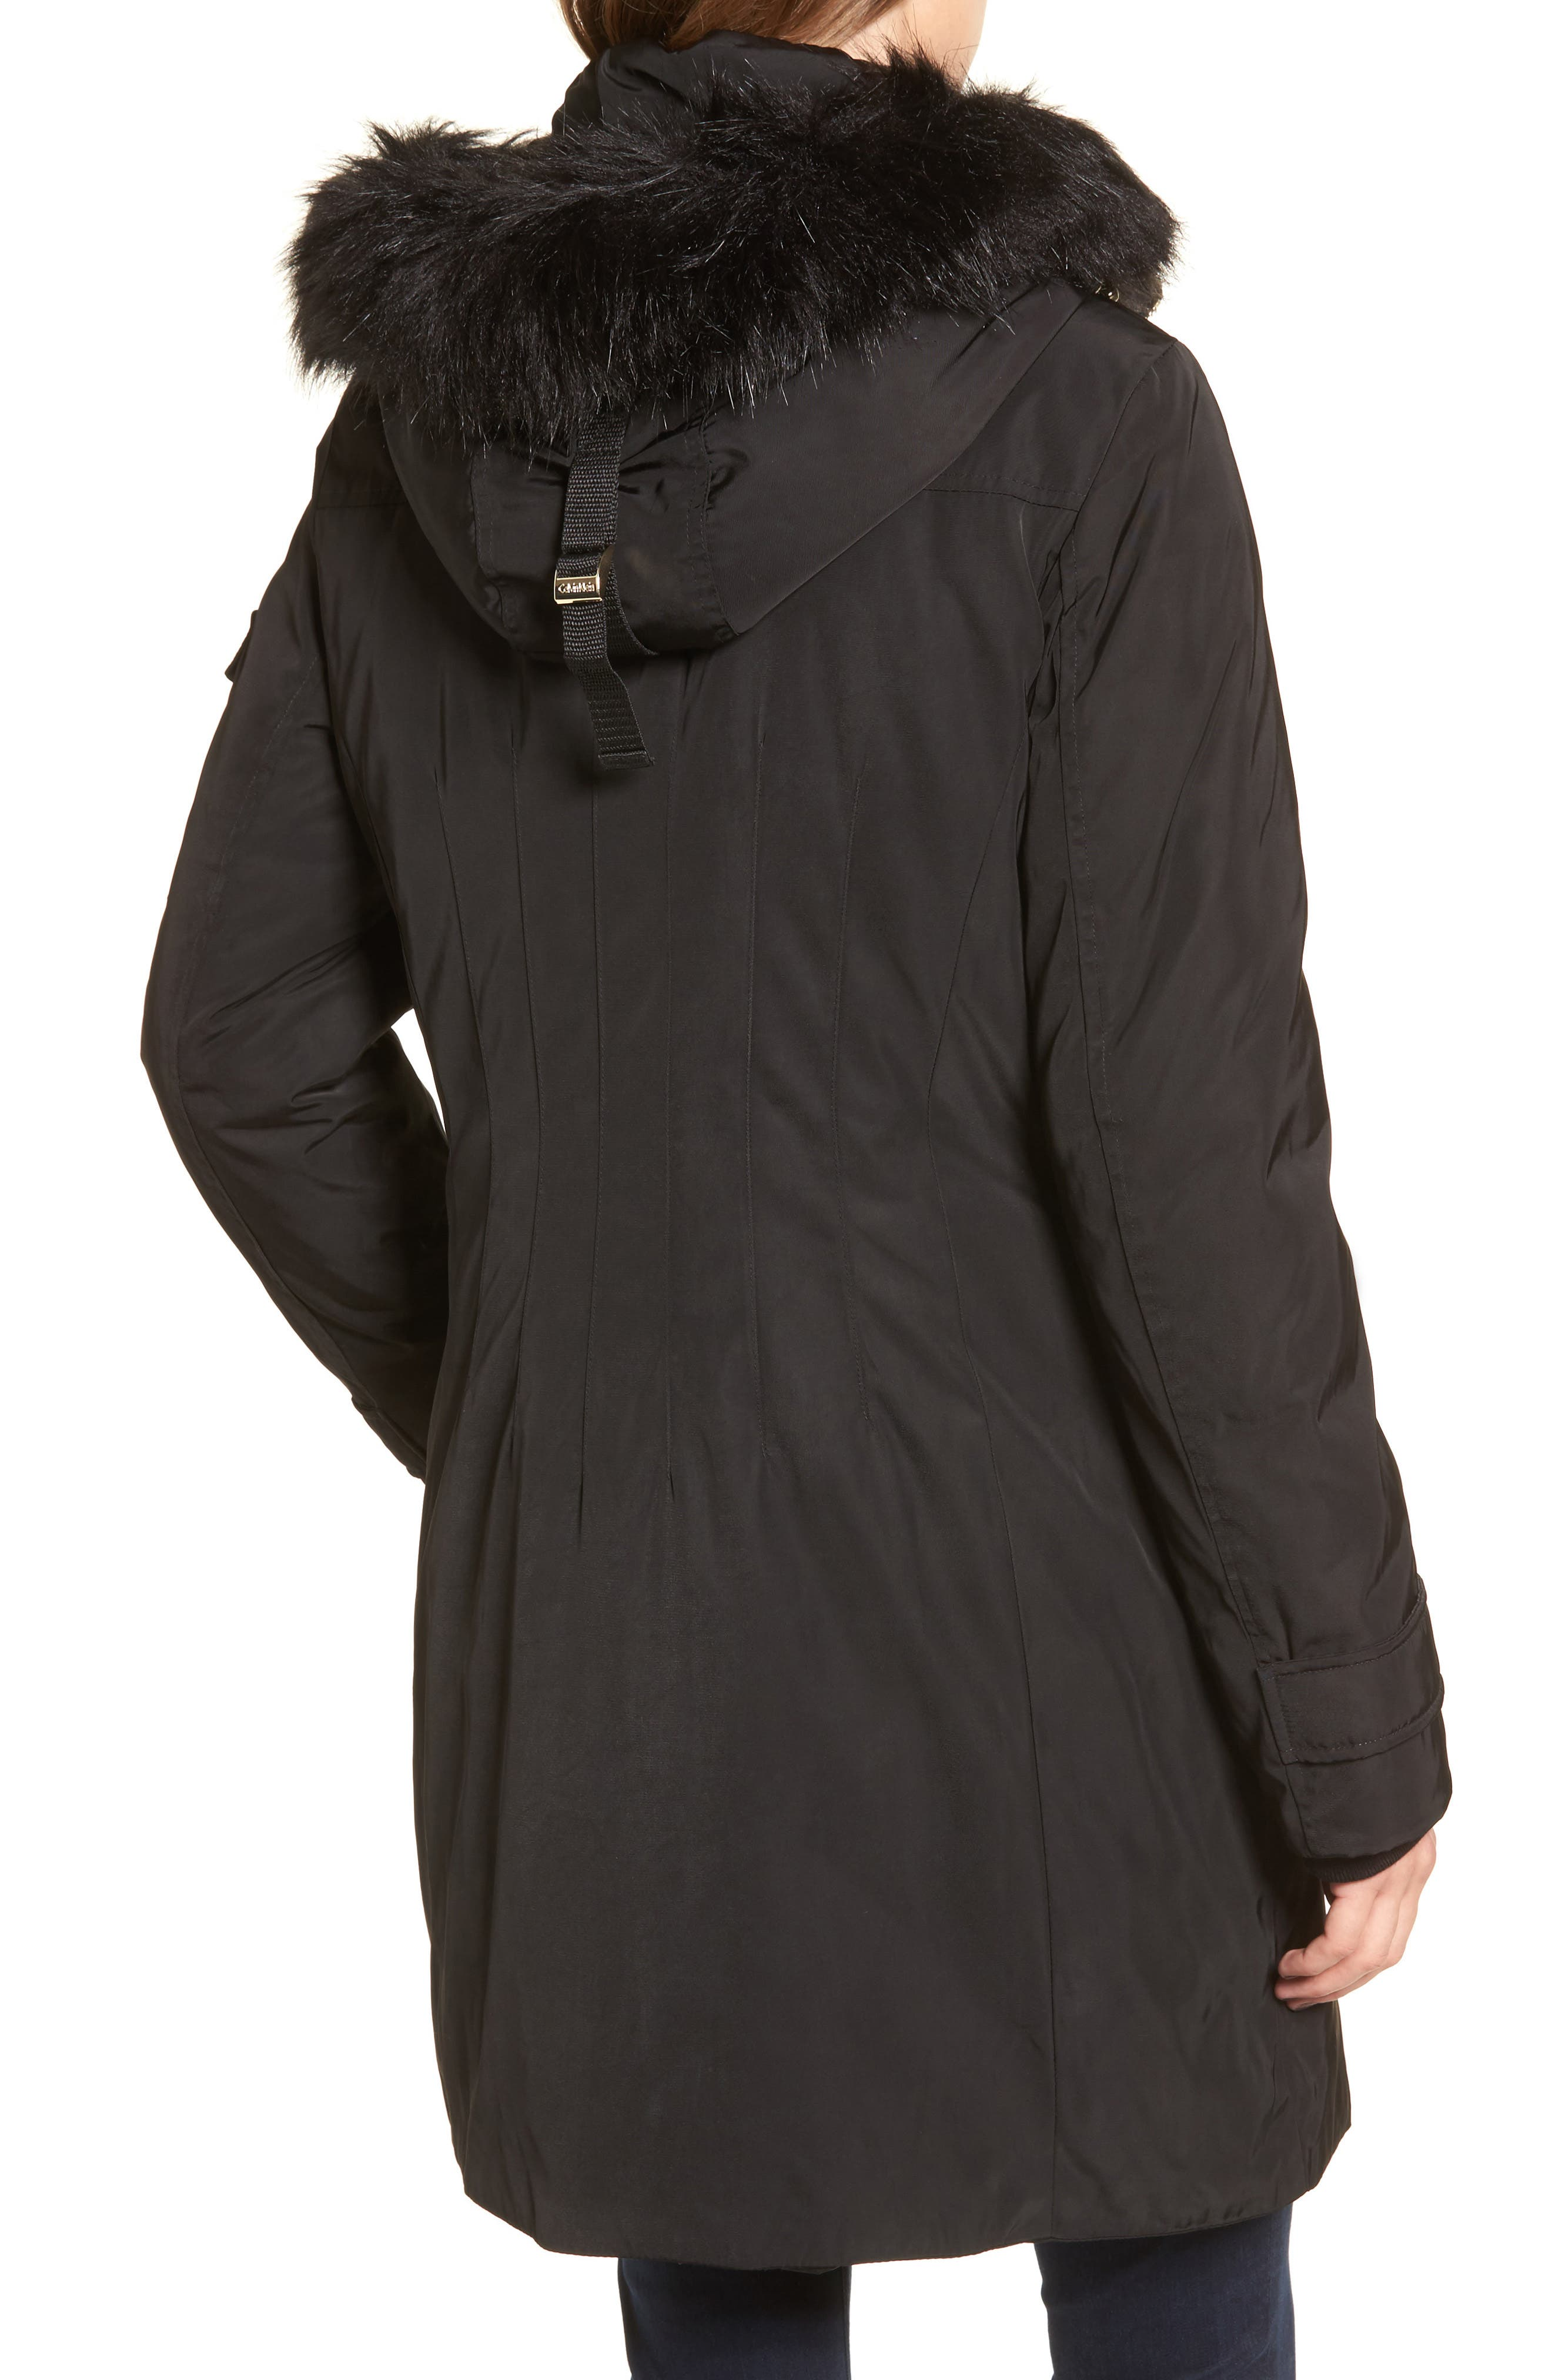 Calvien Klein Hooded Down Parka with Removable Faux Fur Collar,                             Alternate thumbnail 2, color,                             001